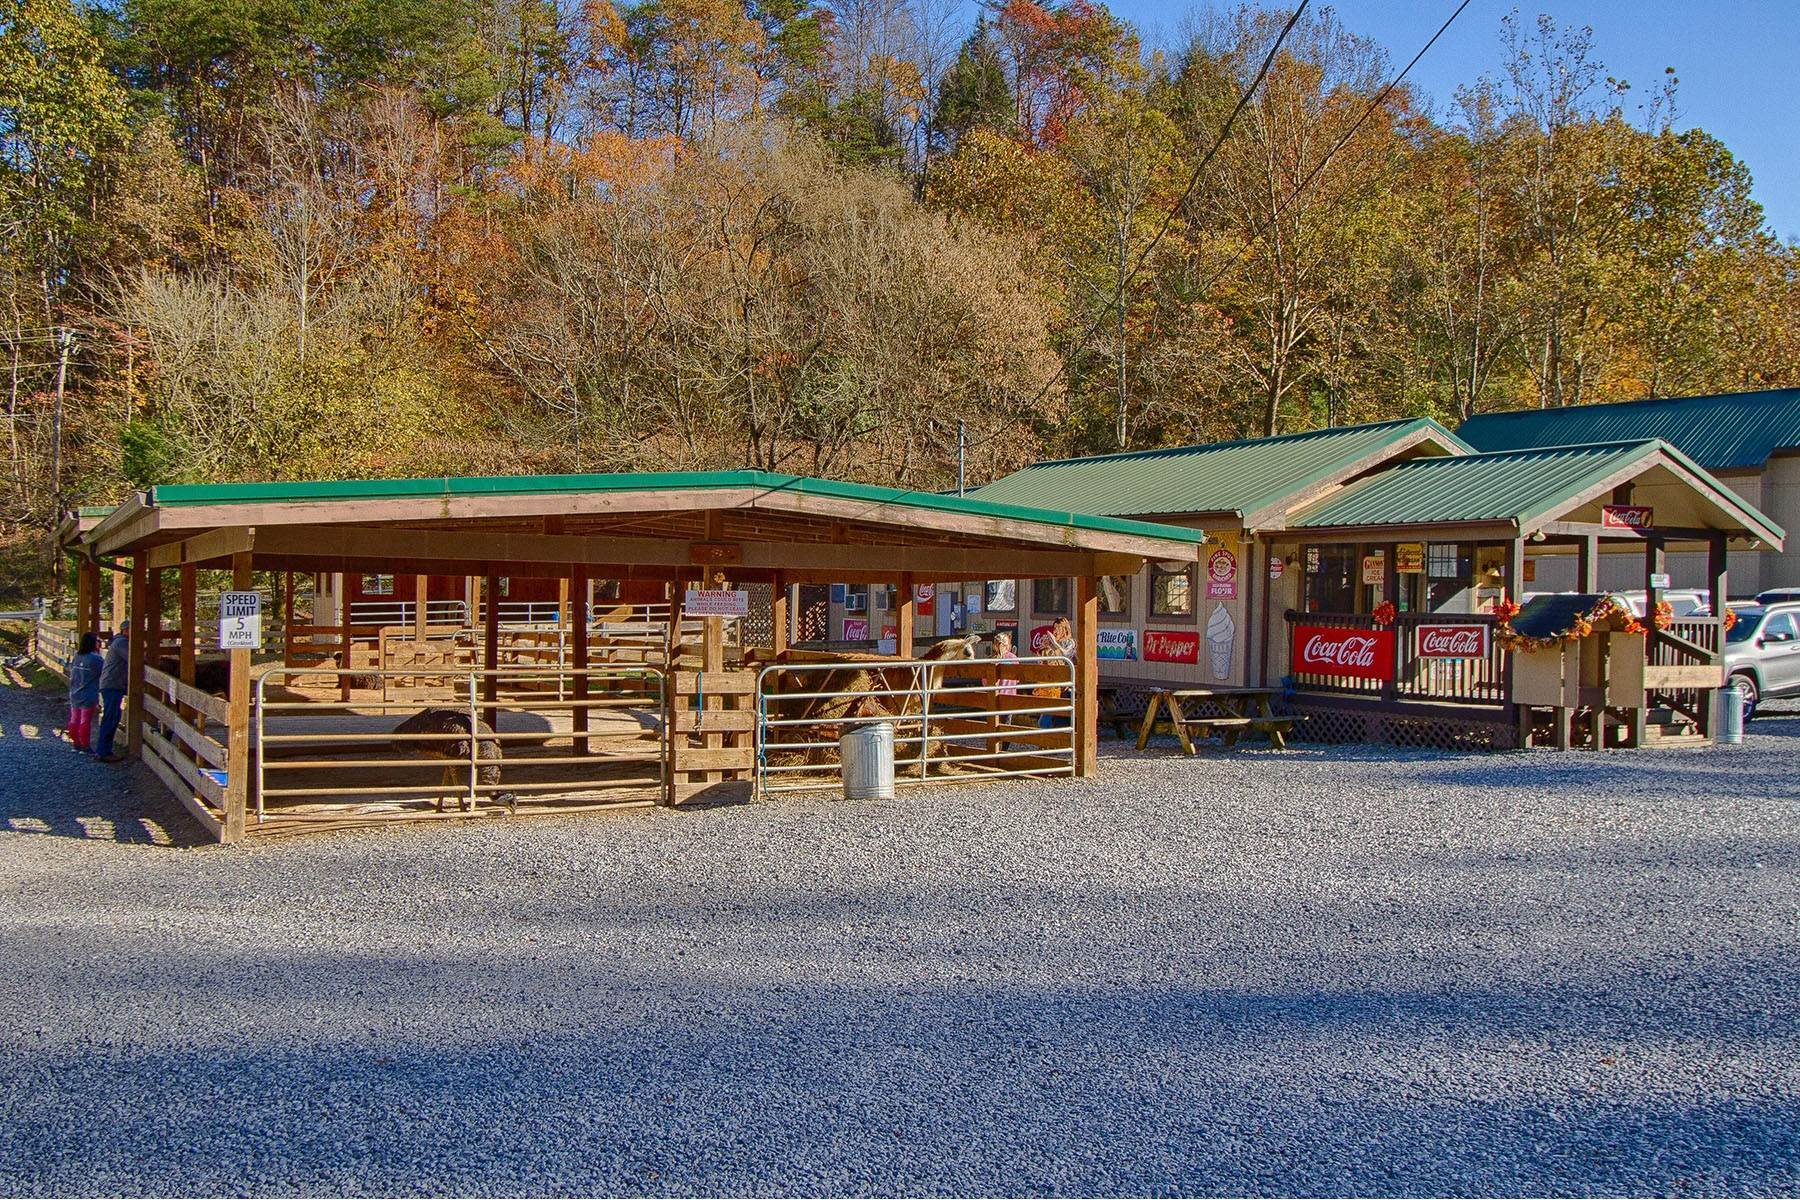 Property for Sale at Big Rock Dude Ranch 909 Little Cove Road Pigeon Forge, Tennessee 37863 United States